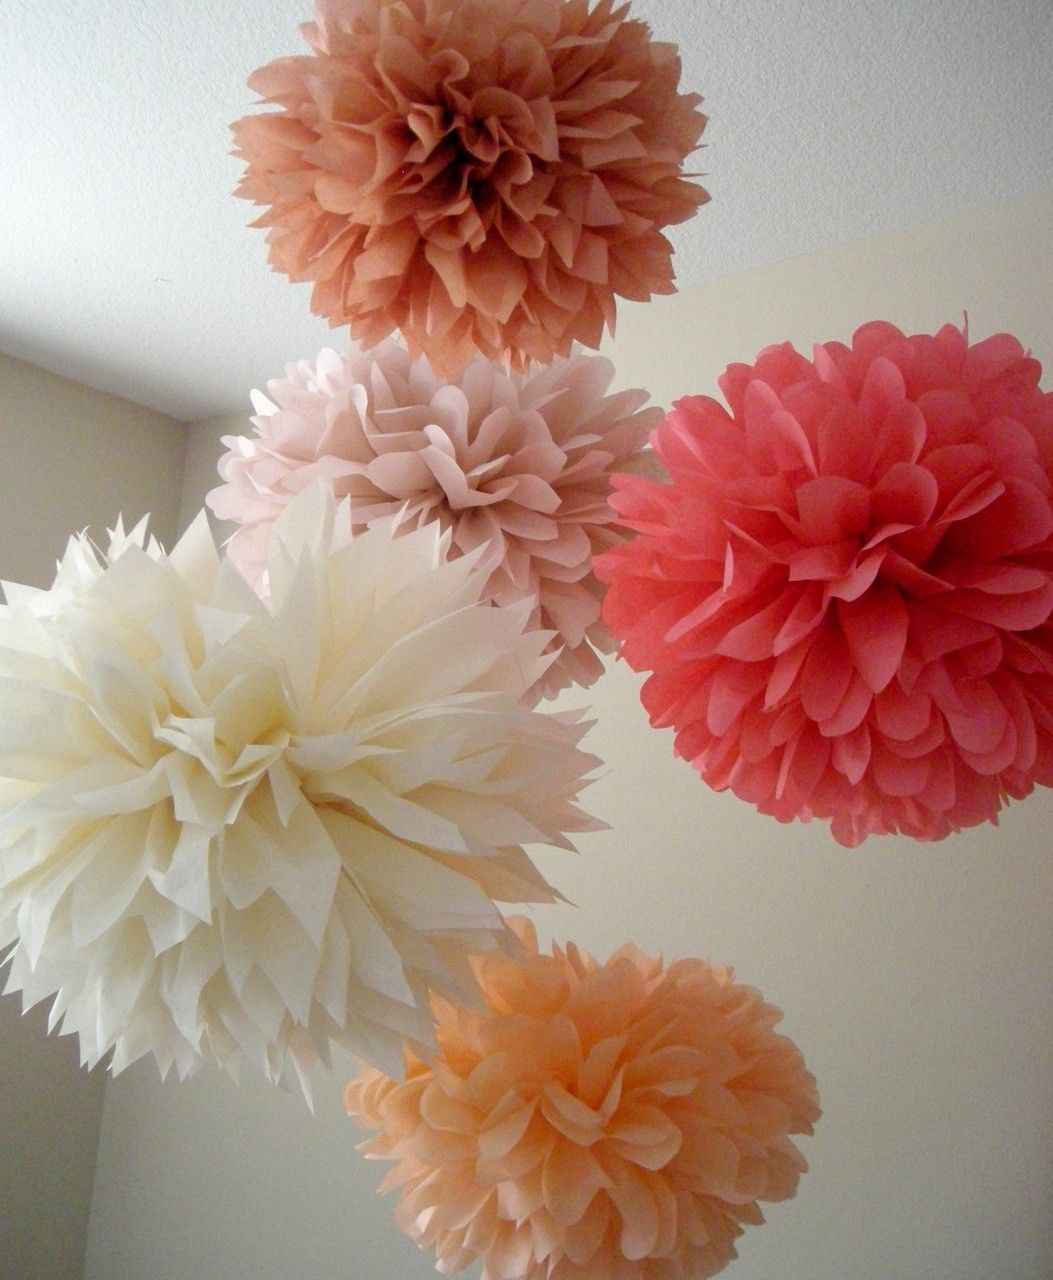 Tea Party 5 Tissue Paper Pompoms Paris French Theme Baby Bridal Wedding Decorations First 30th Birthday Party Peach Coral Rose Gold In 2020 Diy Birthday Decorations Tissue Paper Pom Poms 18th Birthday Decorations